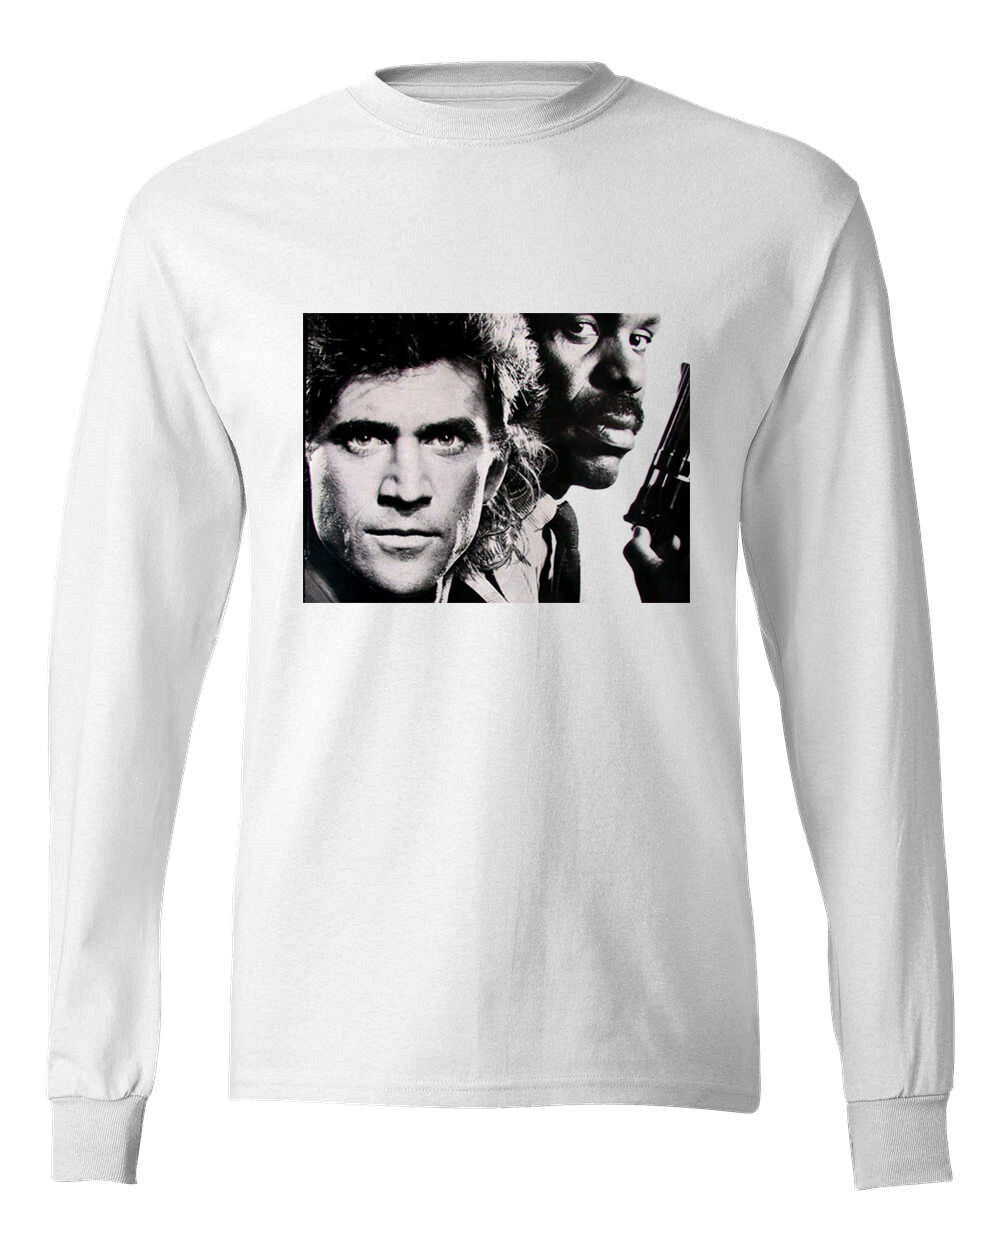 Lethal Weapon T-shirt retro 80's 100% cotton Long Sleeve tee